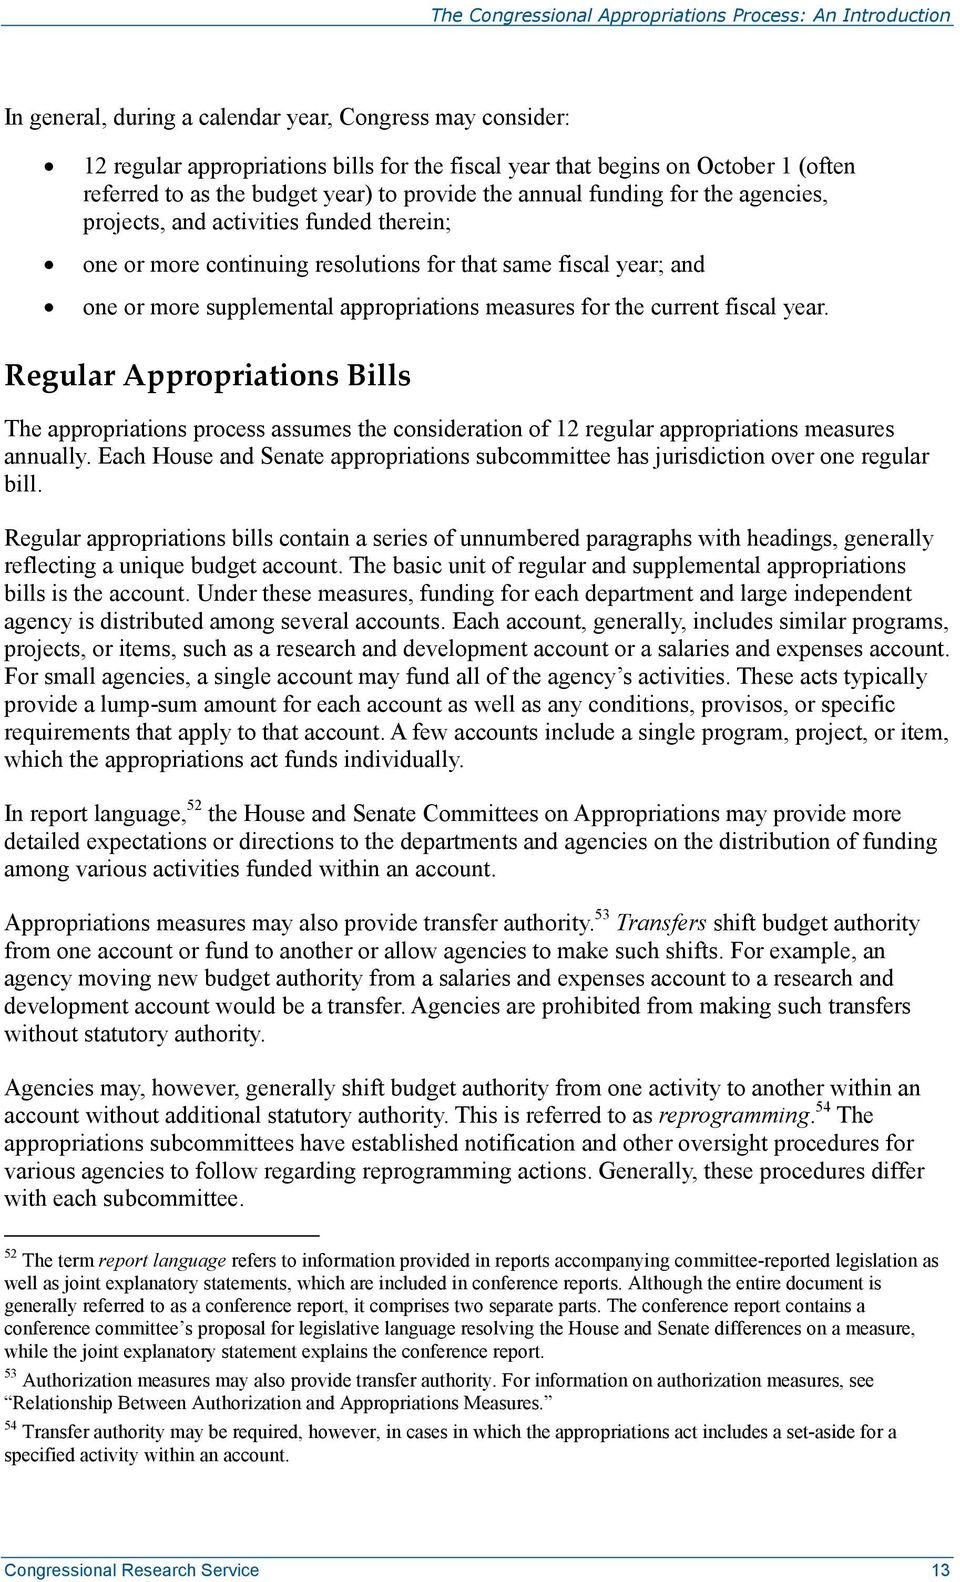 fiscal year. Regular Appropriations Bills The appropriations process assumes the consideration of 12 regular appropriations measures annually.